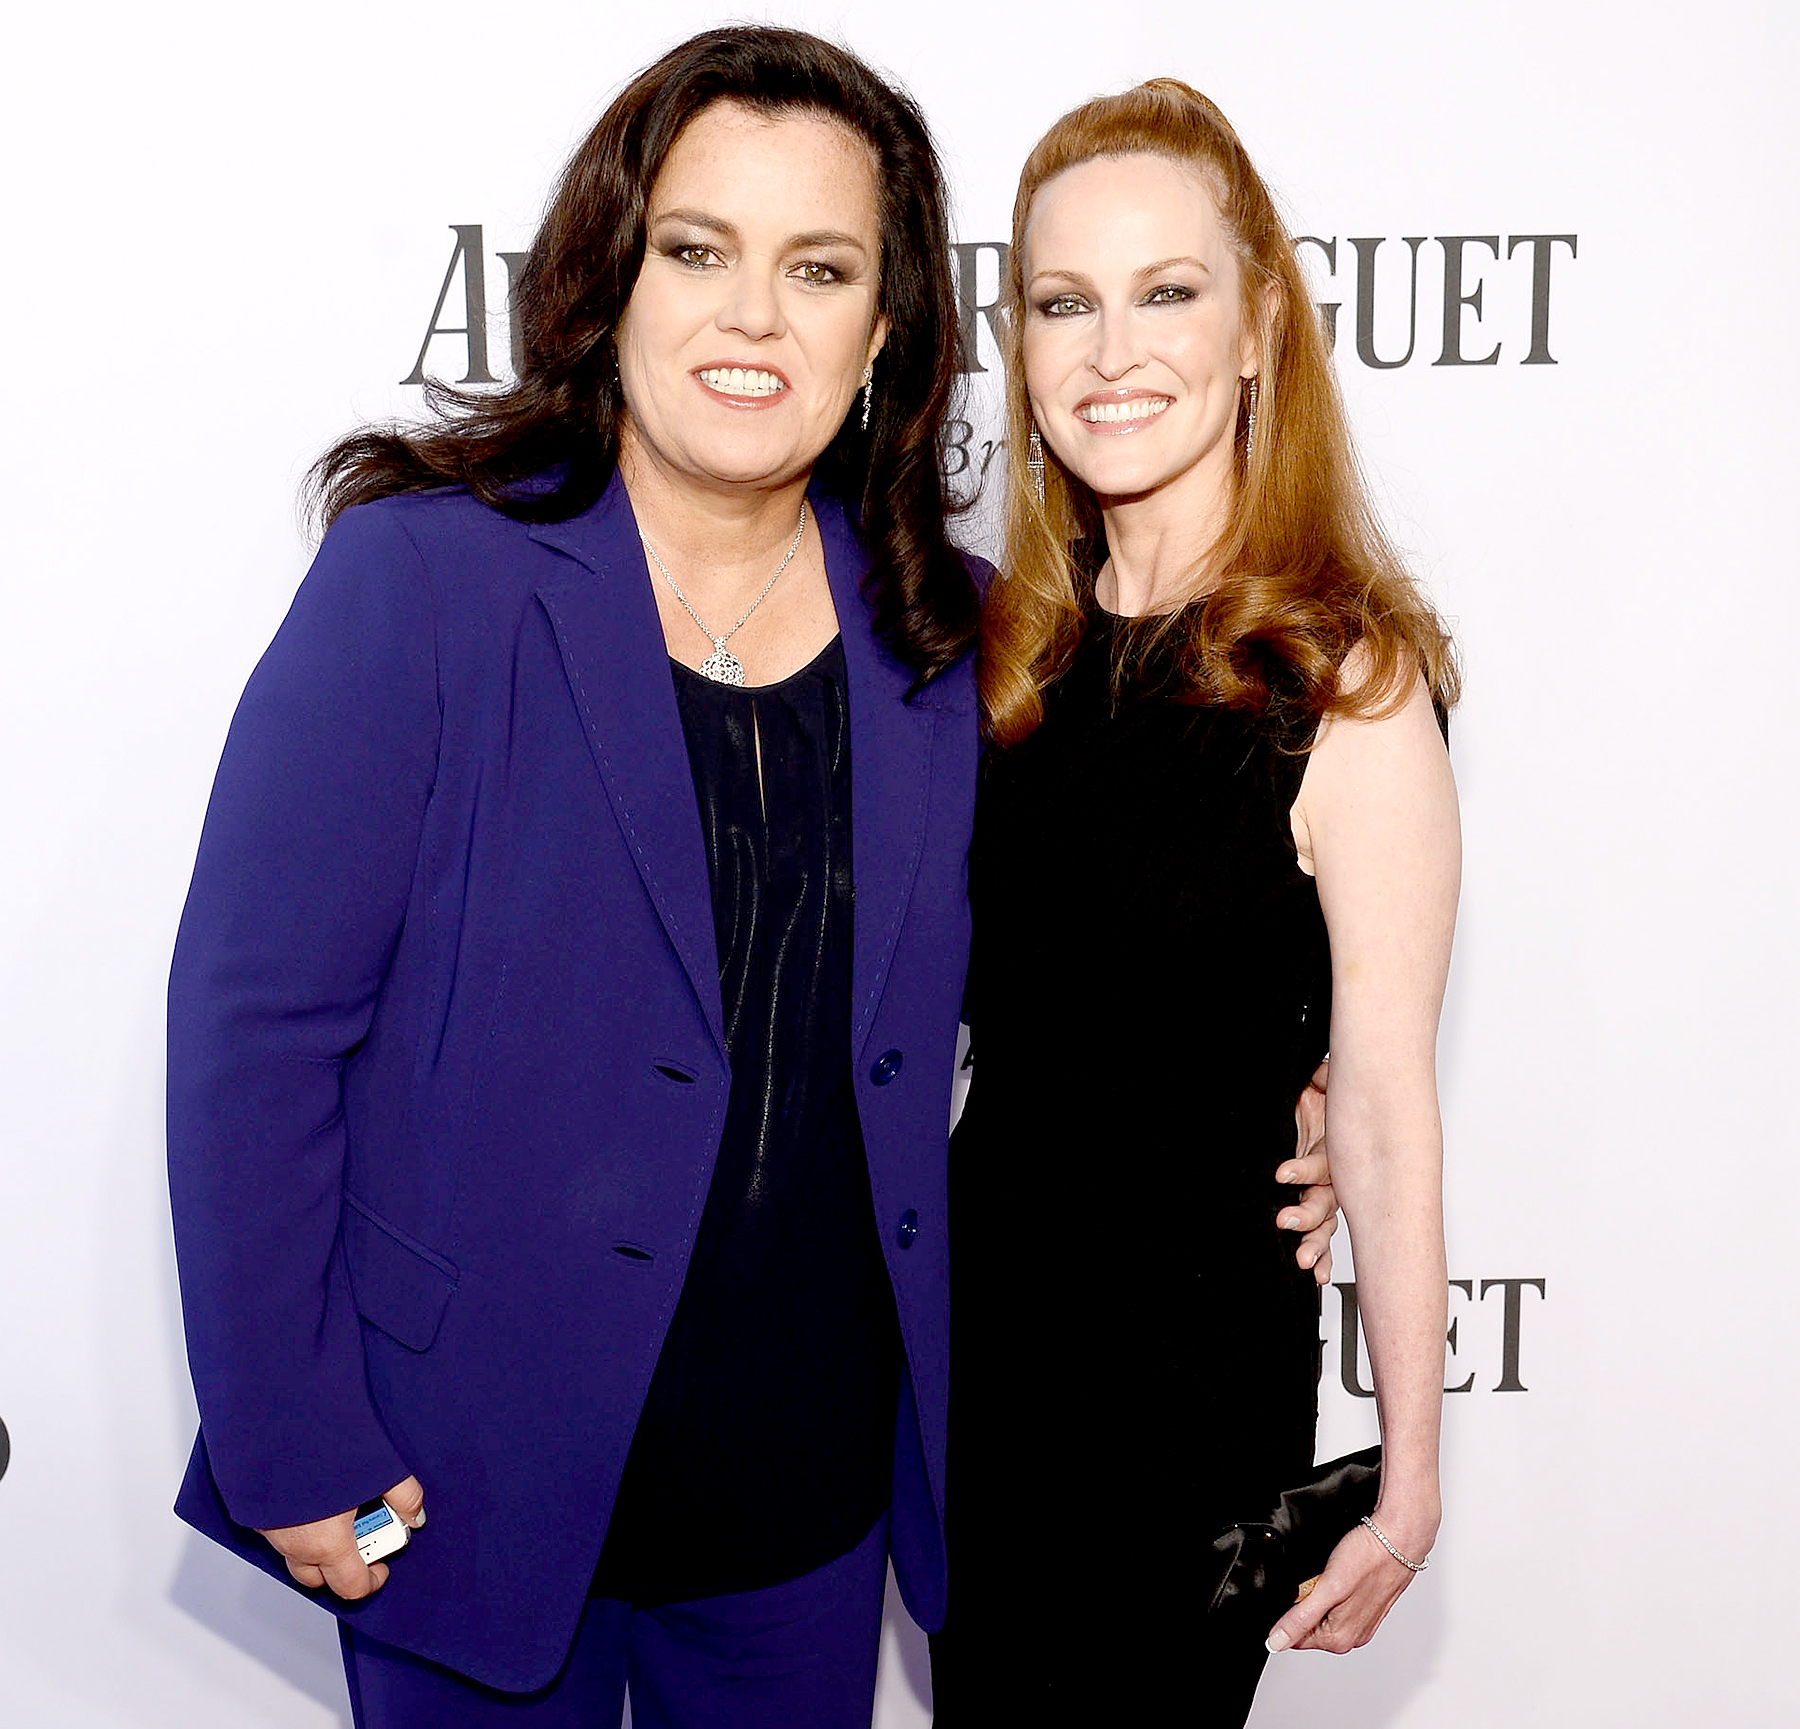 Rosie O'Donnell and Michelle Rounds attend the 68th Annual Tony Awards at Radio City Music Hall in New York City on June 8, 2014.